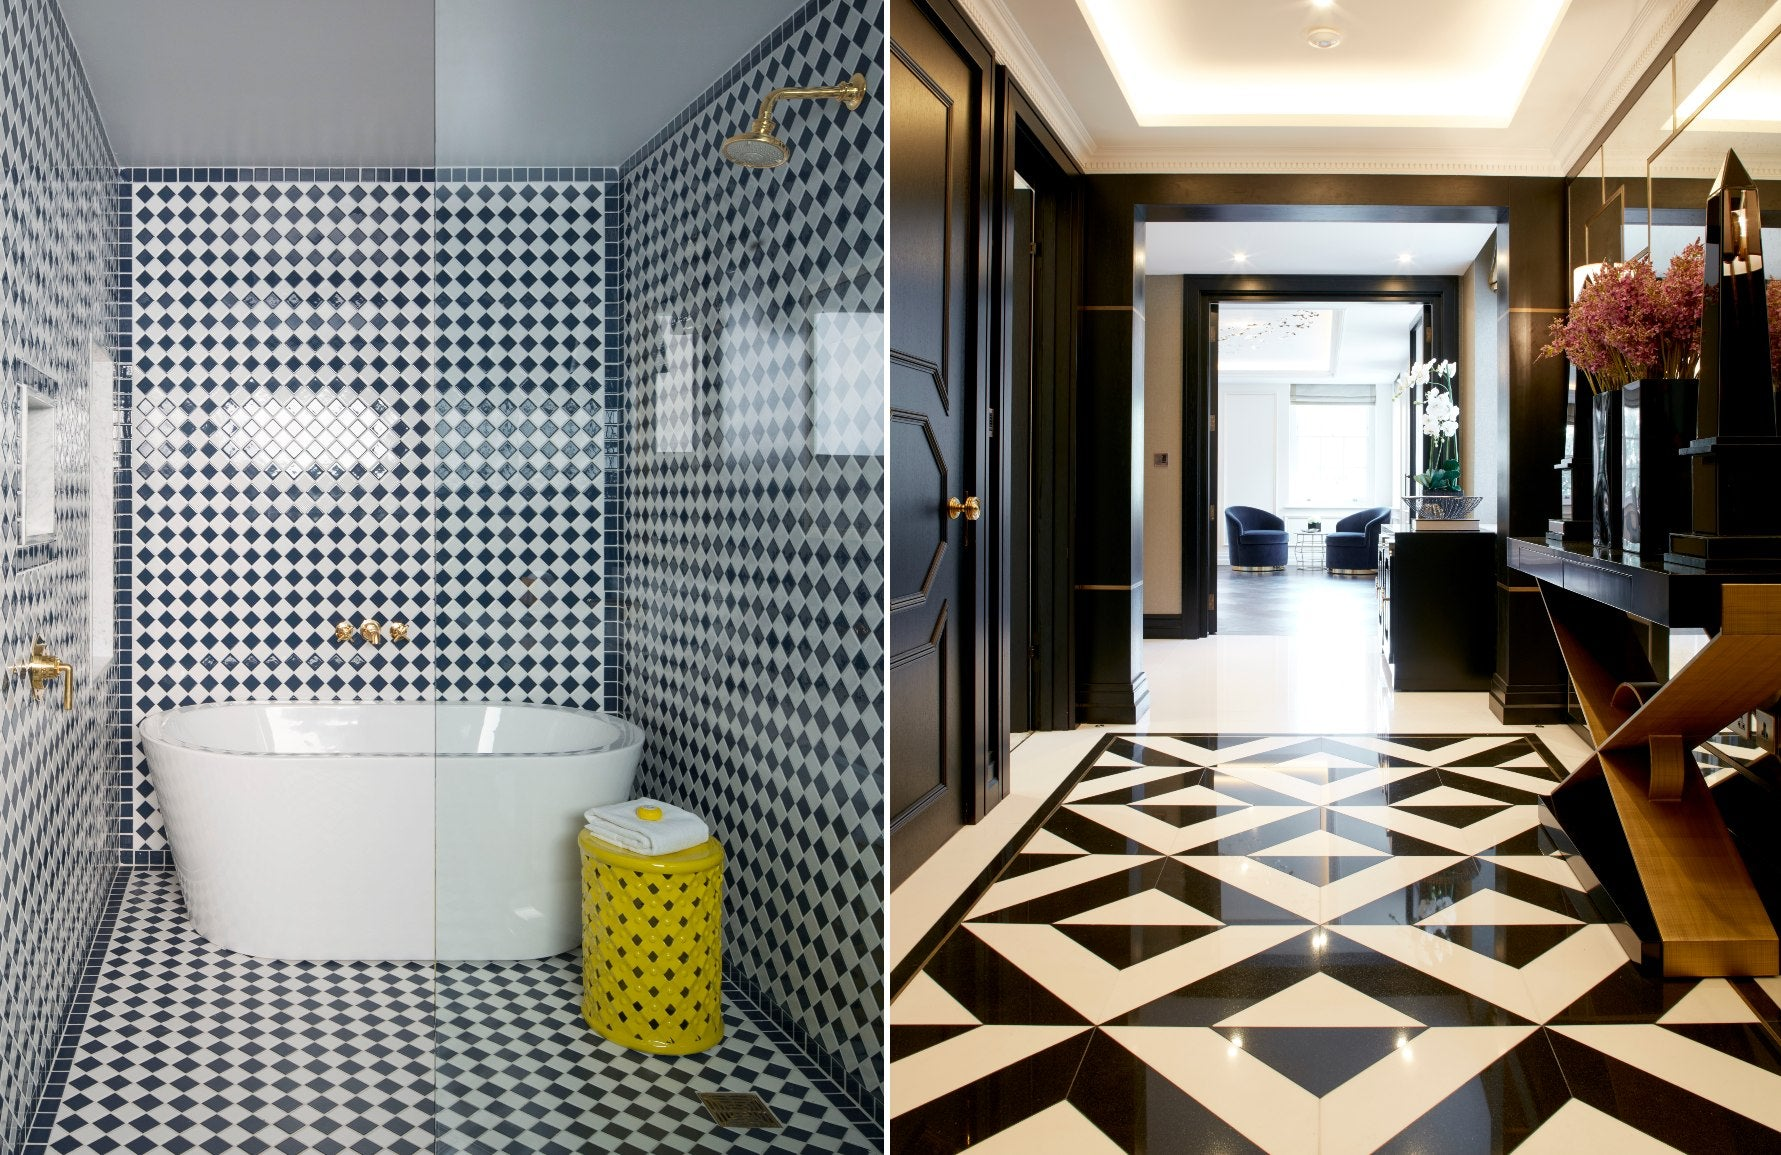 Forms of Geometric Shapes & Patterns In Interior Design | Squares & Triangles | LuxDeco.com Style Guide